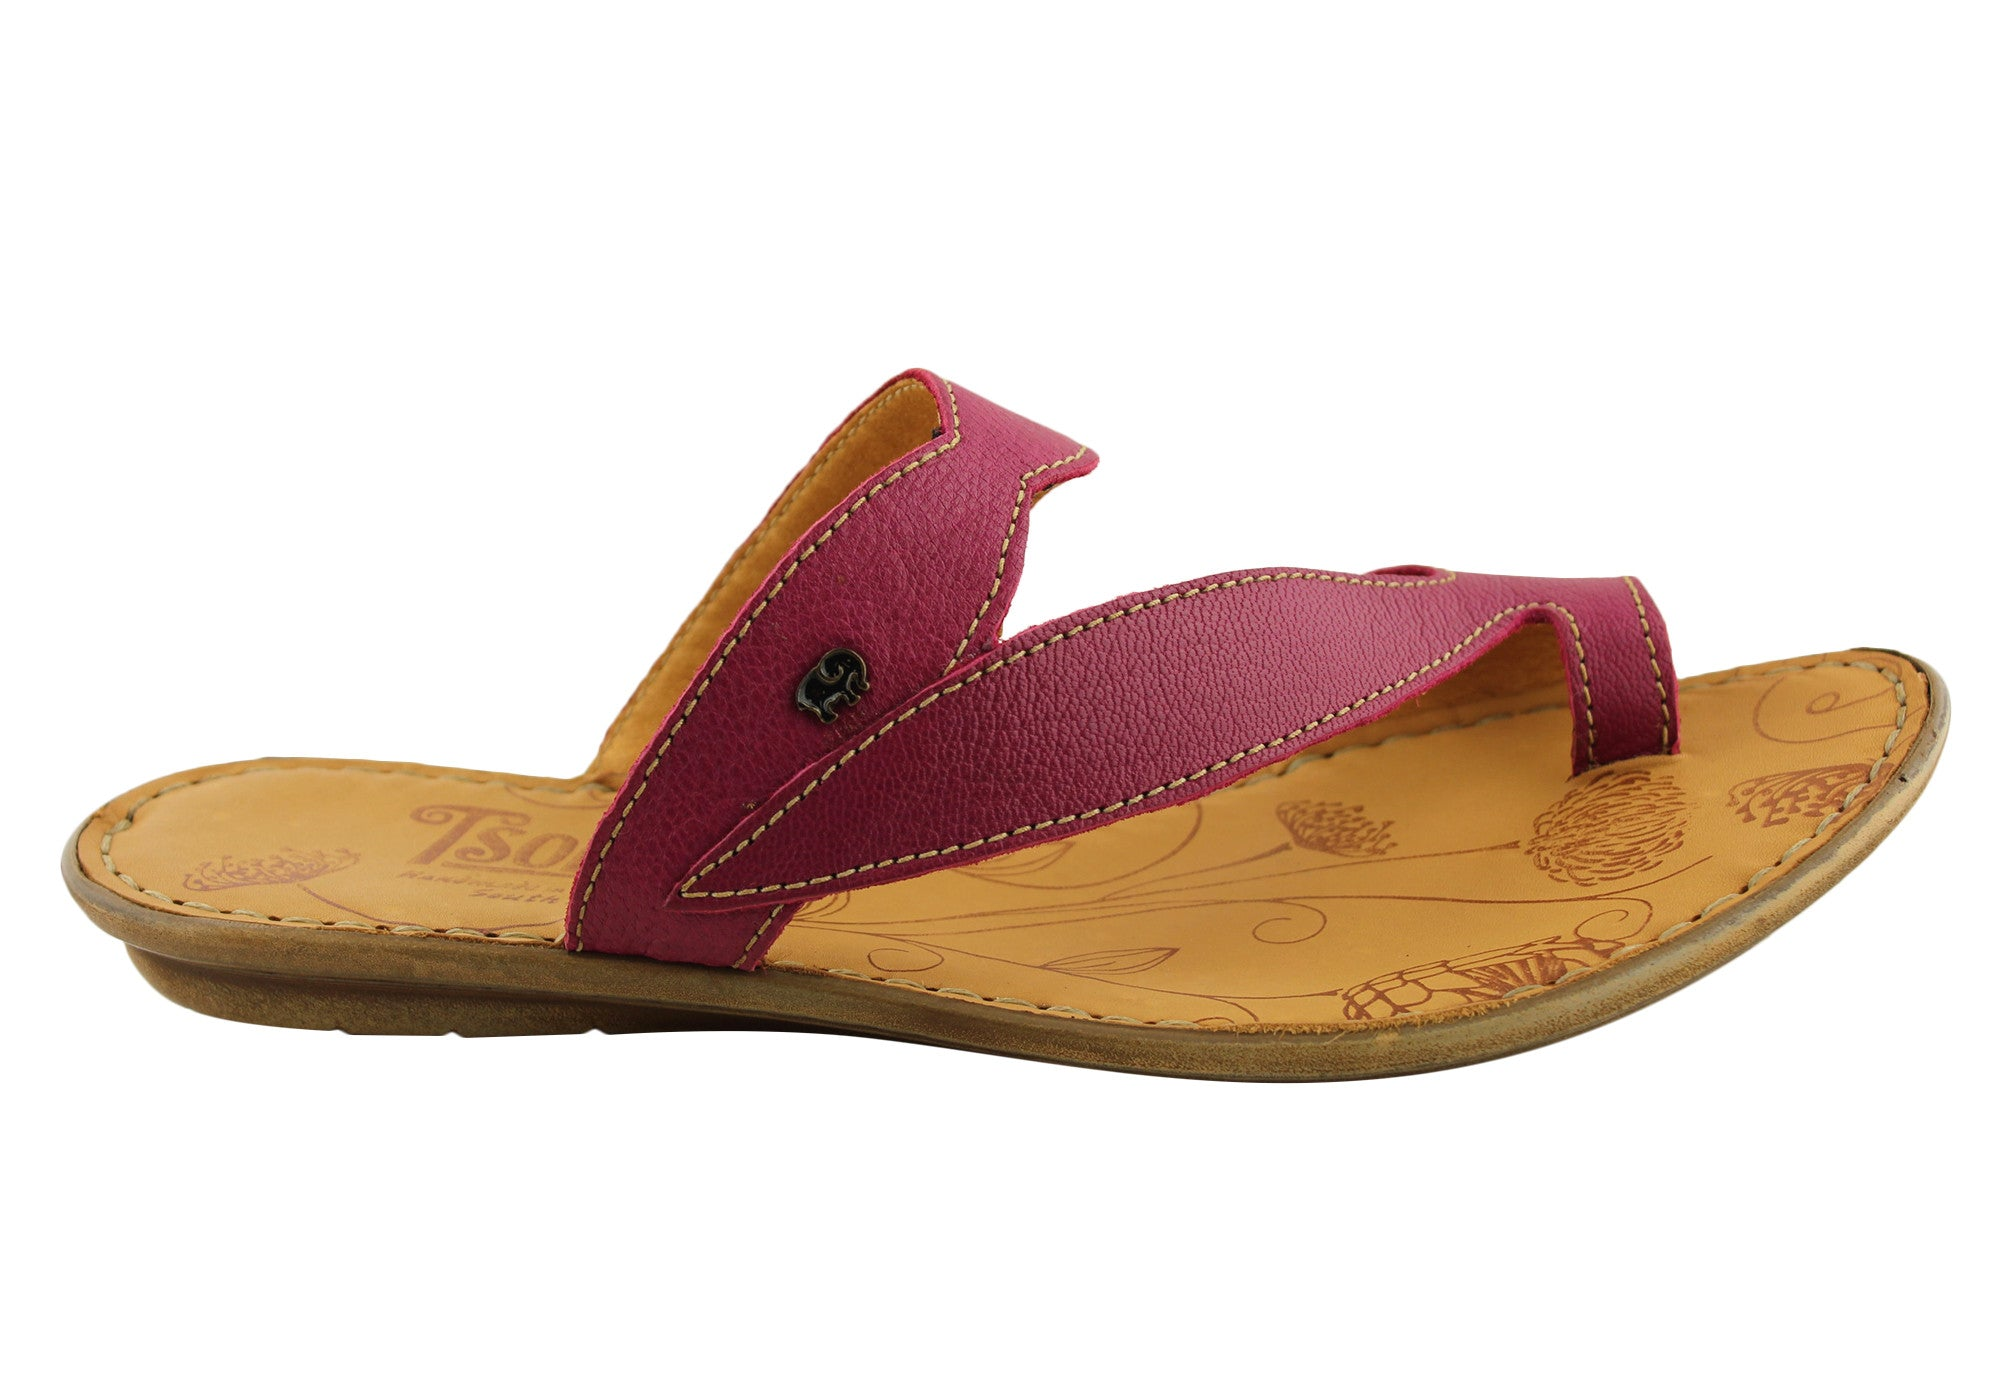 Gladiator Sandals In South Africa. heresfilmz8.ga shows fashion collections of current Gladiator Sandals In South Africa. You could also find more popular women items and recommendation forBoots, as there always a huge selection for allSandalsand matches items.